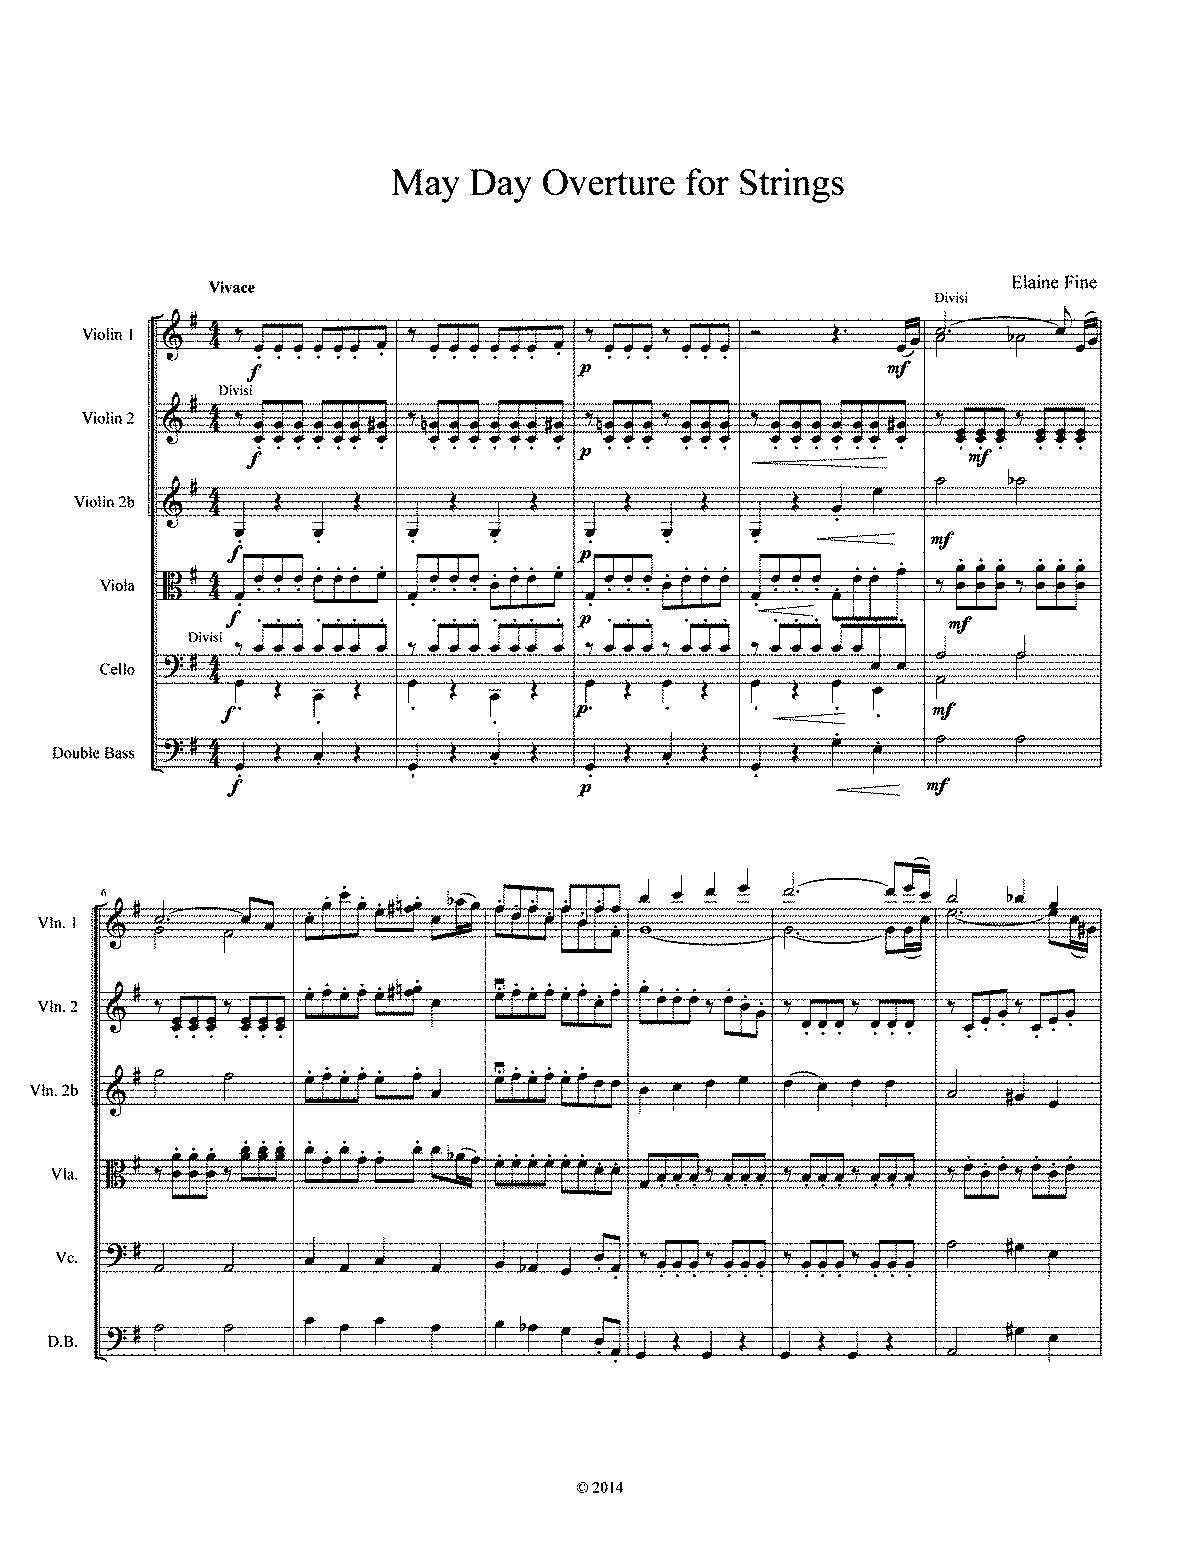 PMLP541978-May Day Overture for Strings Score and Parts.pdf